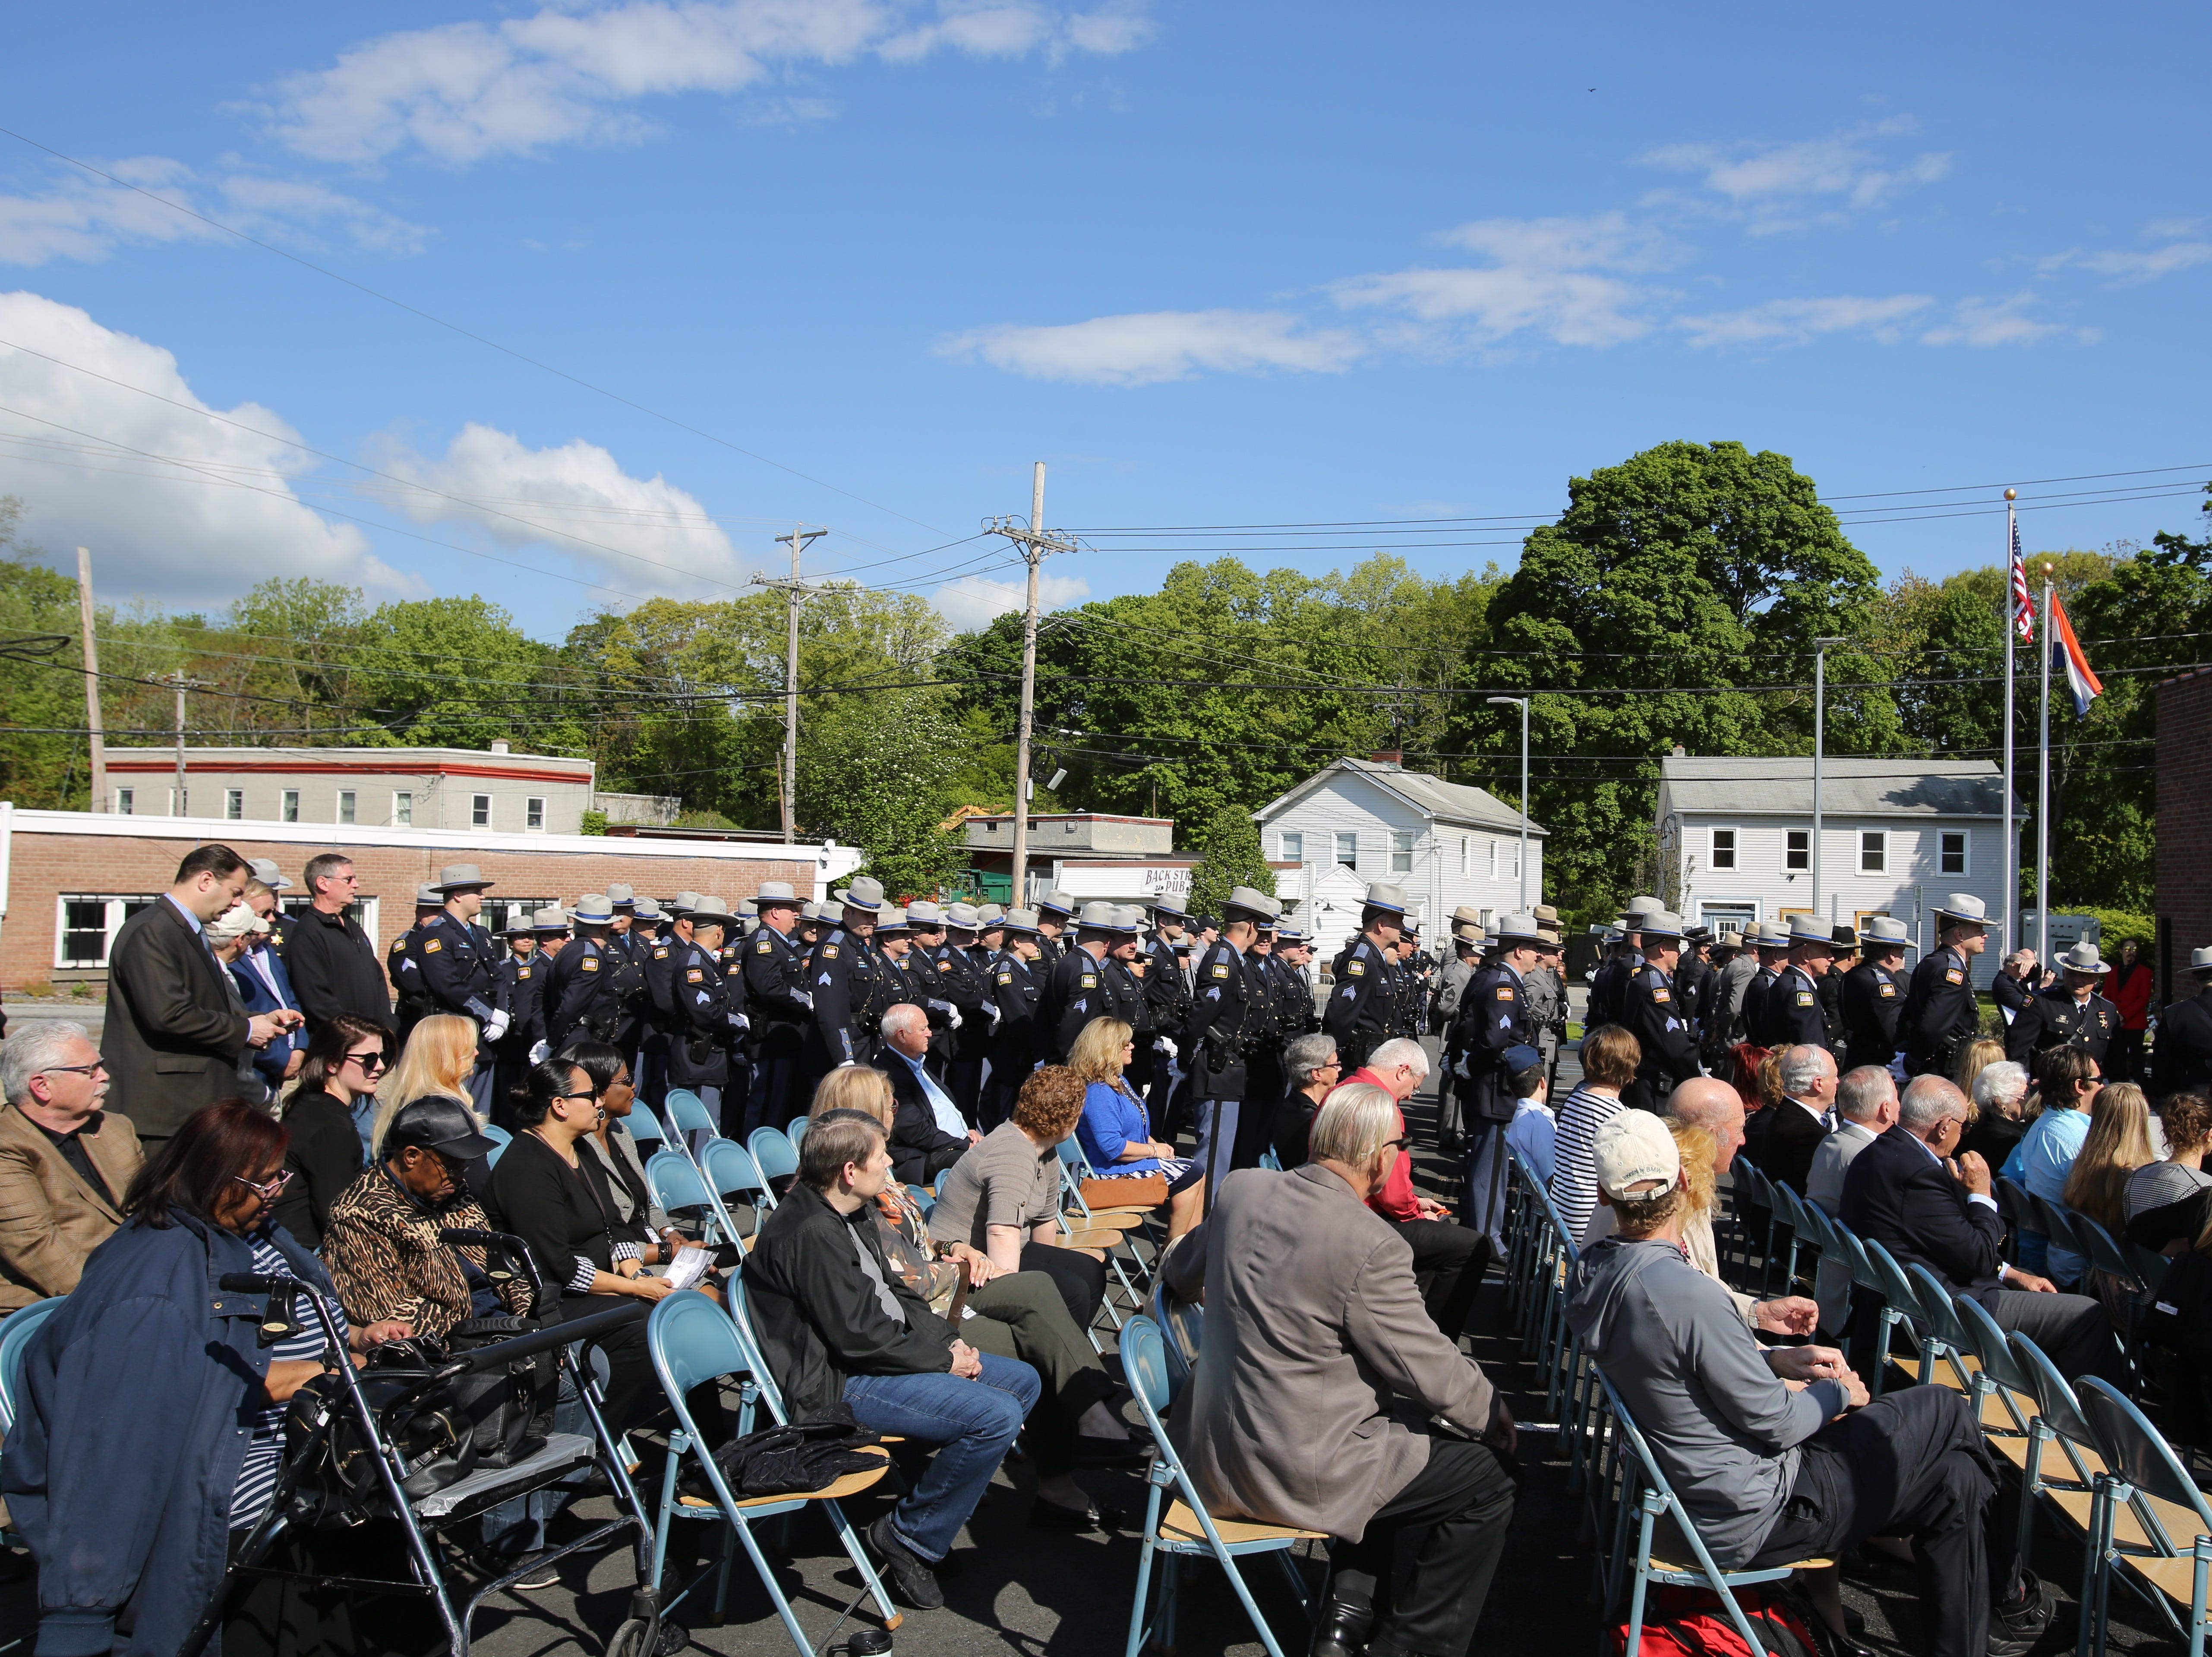 Multiple law enforcement officials and community members celebrate Memorial Day and the sacrifice of police at the Dutchess County Sheriff's Office on May 16, 2019.